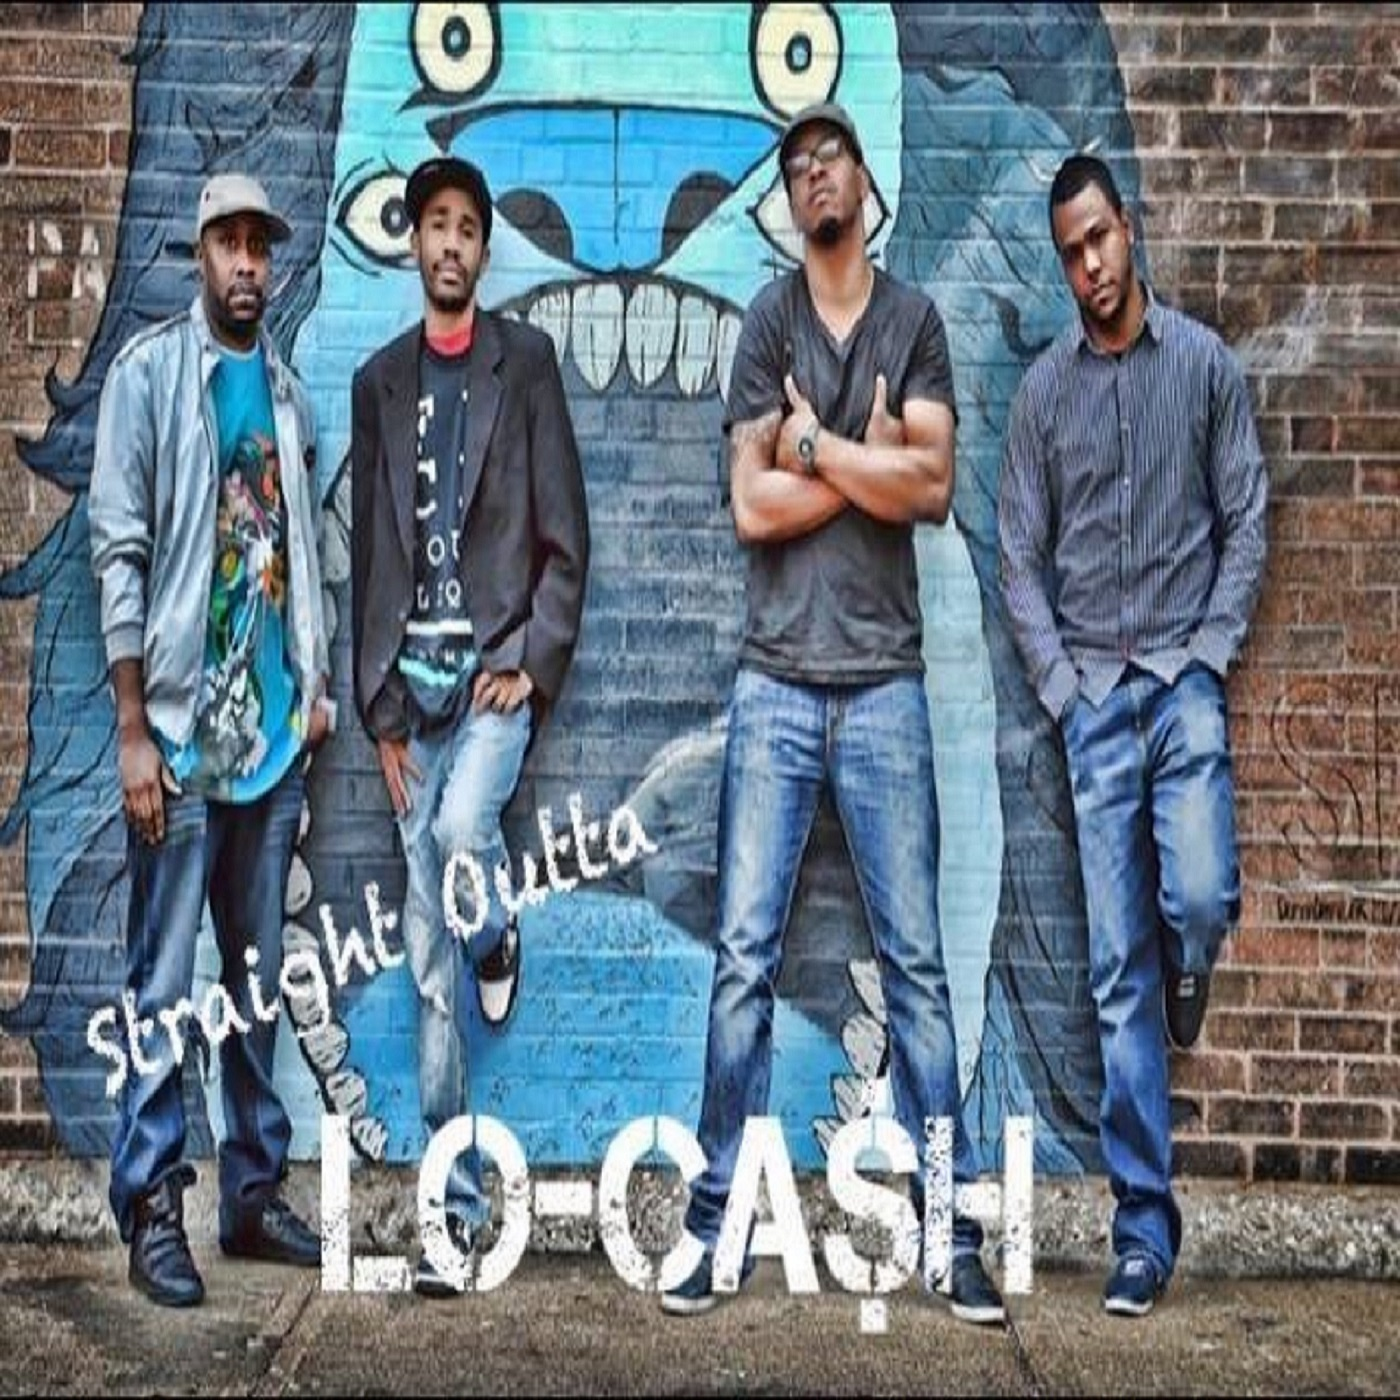 Straight Outta Lo Cash and The Scenario